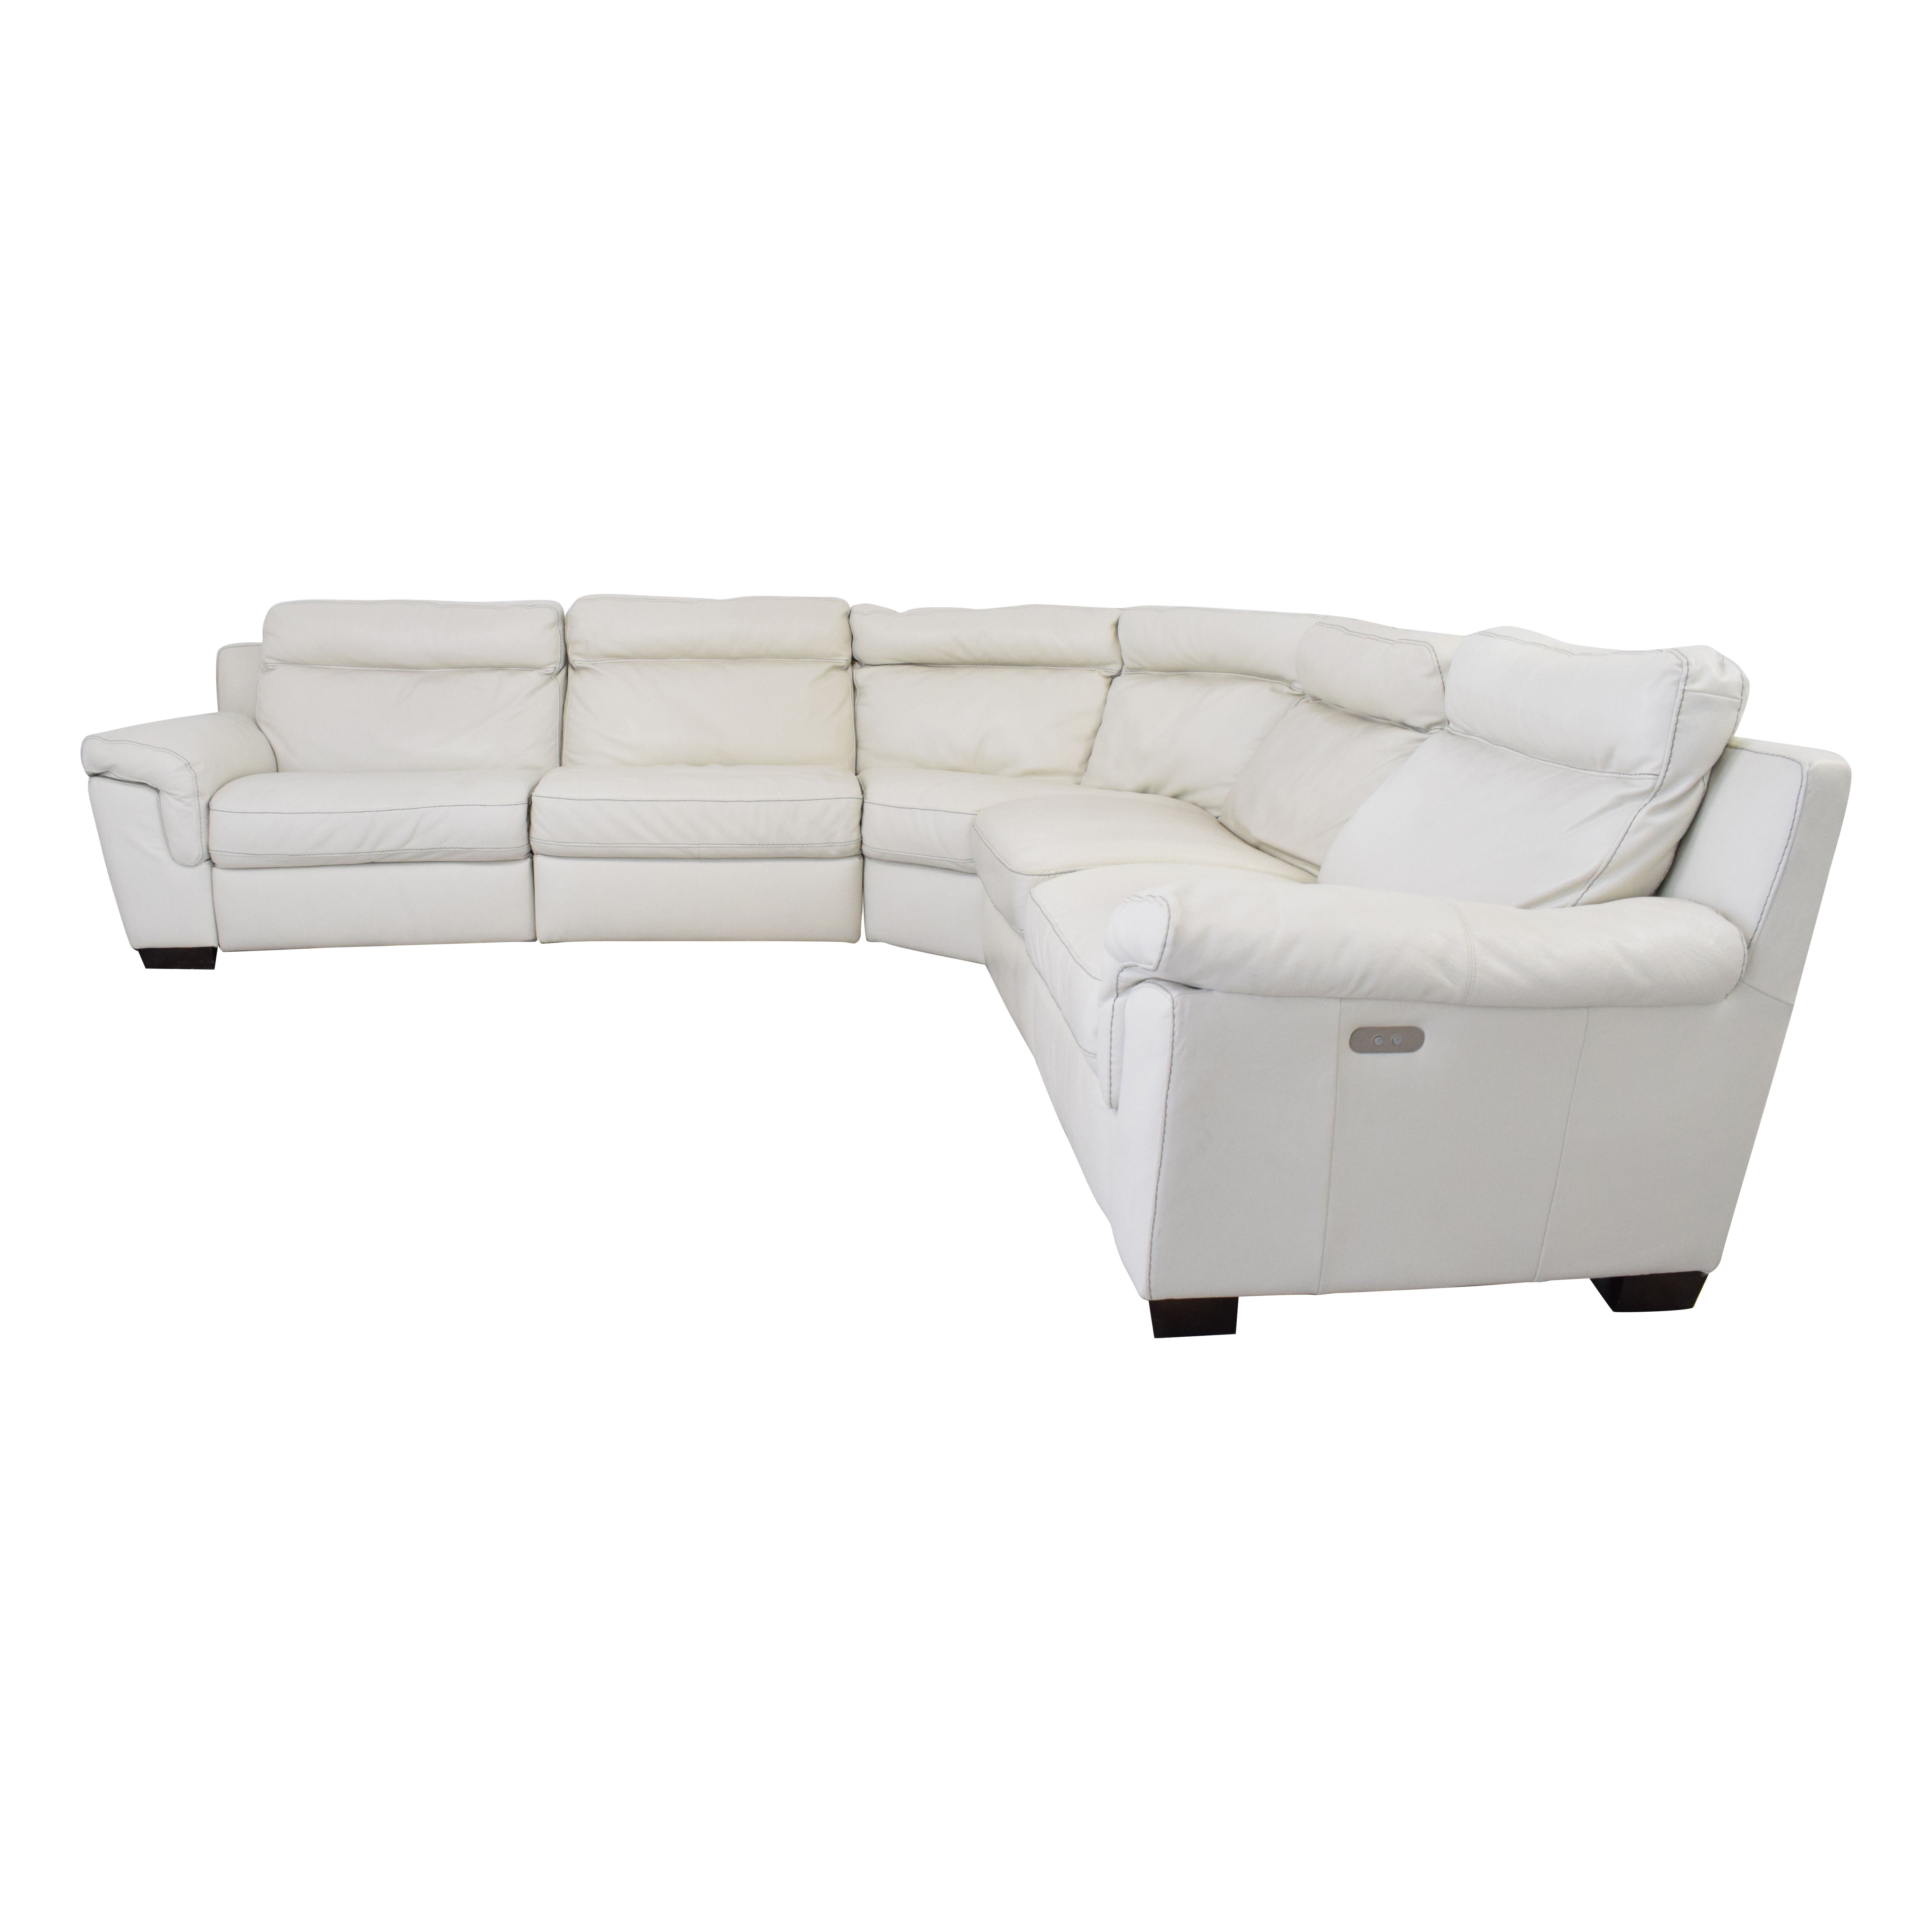 Leather Sectional Sofa With Reclining